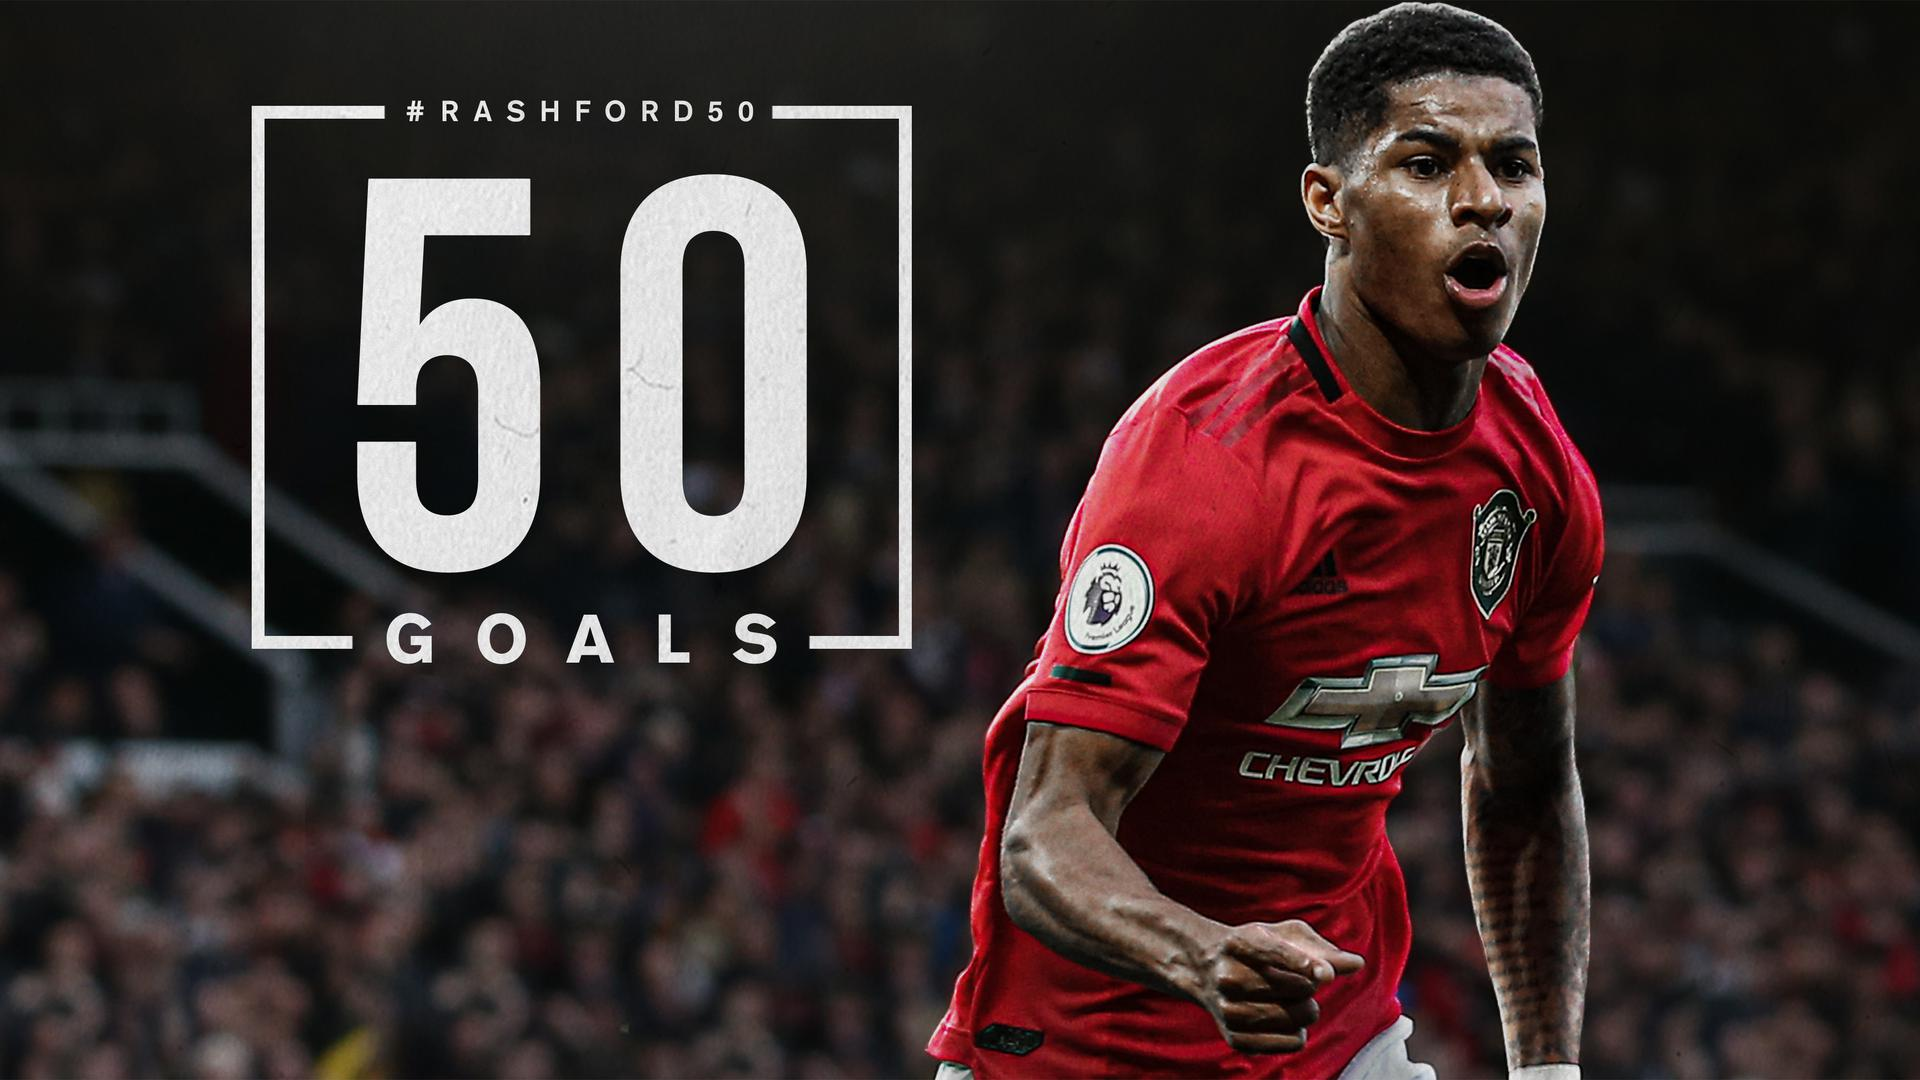 The Numbers Behind Rashfords 50 Goals Manchester United